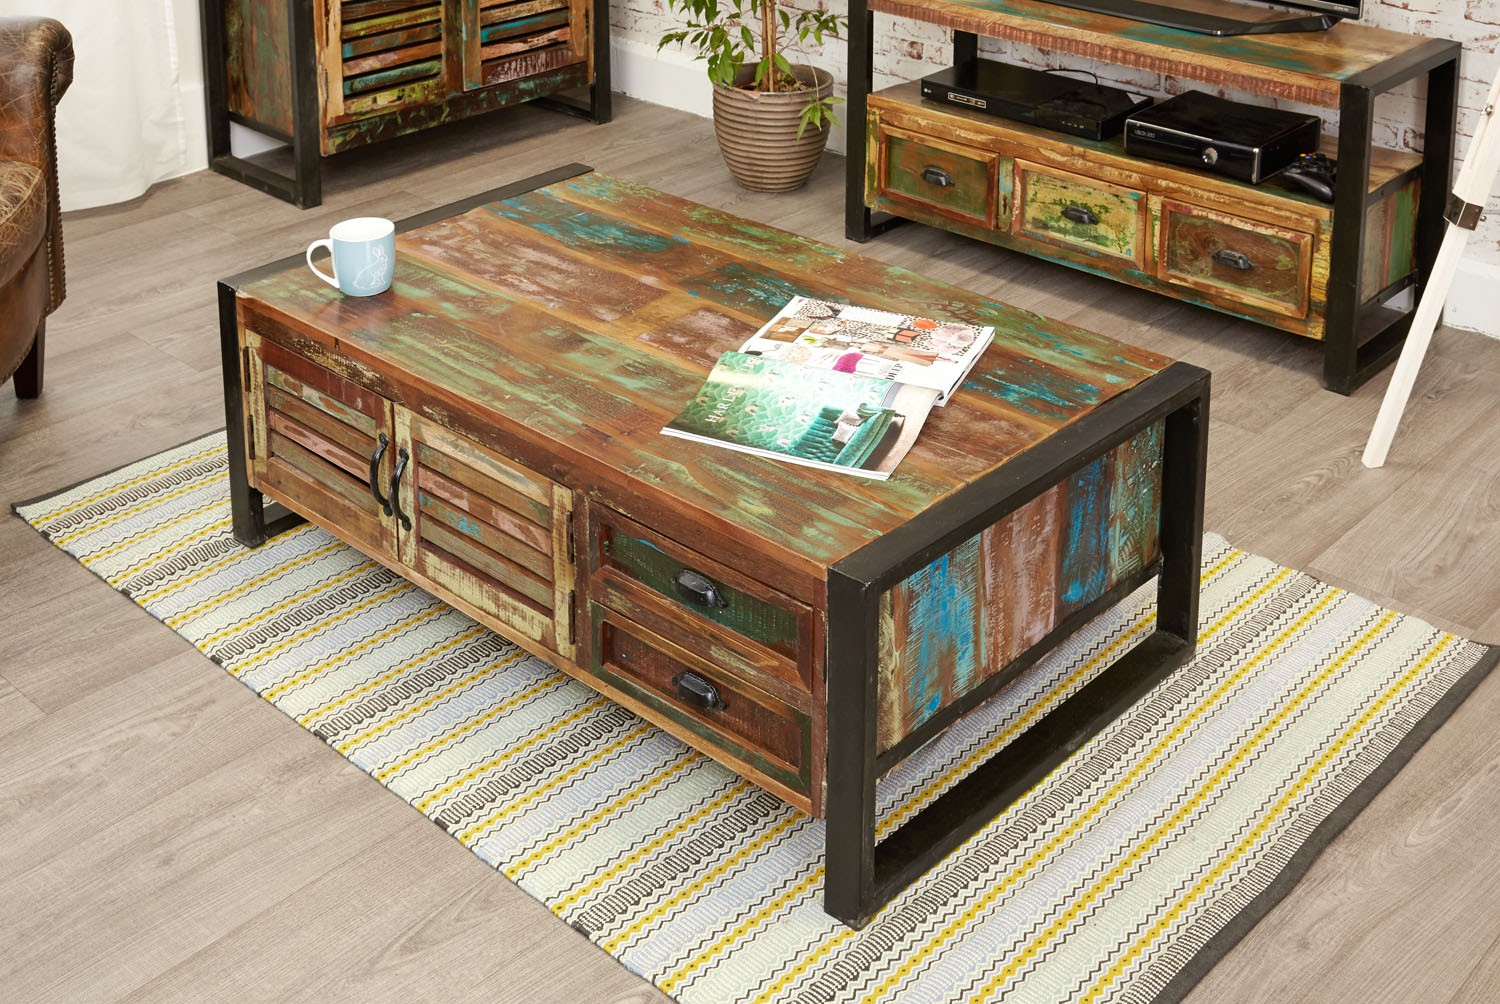 Urban chic 4 door 4 drawers large coffee table urban chic urban chic 4 door 4 drawers large coffee table geotapseo Choice Image